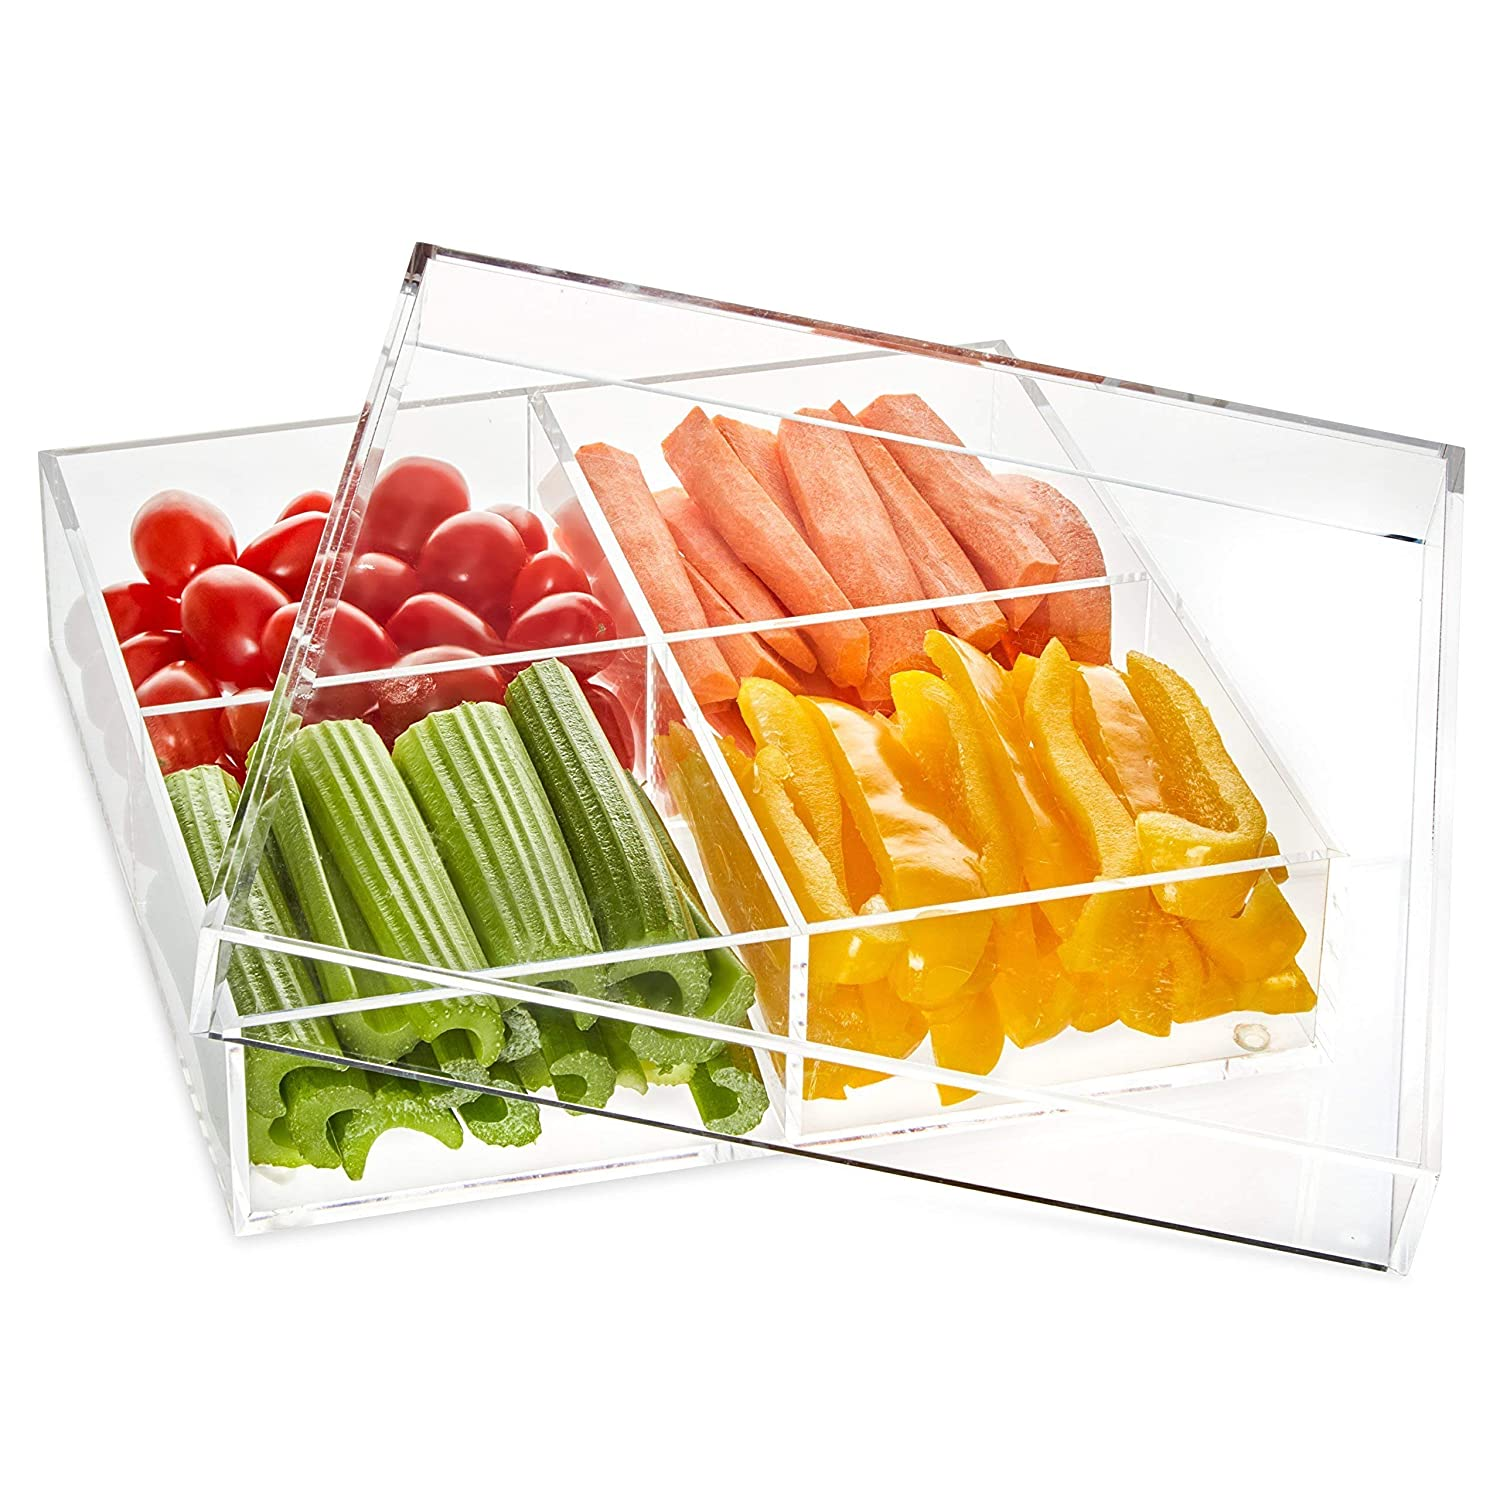 Acrylic Serving Tray With Cover- Acrylic Organizer- 4 Compartments Serving Dish- Thick High-End Acrylic Containers - Clear Multifunctional-Lid Included- BBQ Tray Lucite by Design CS992WL